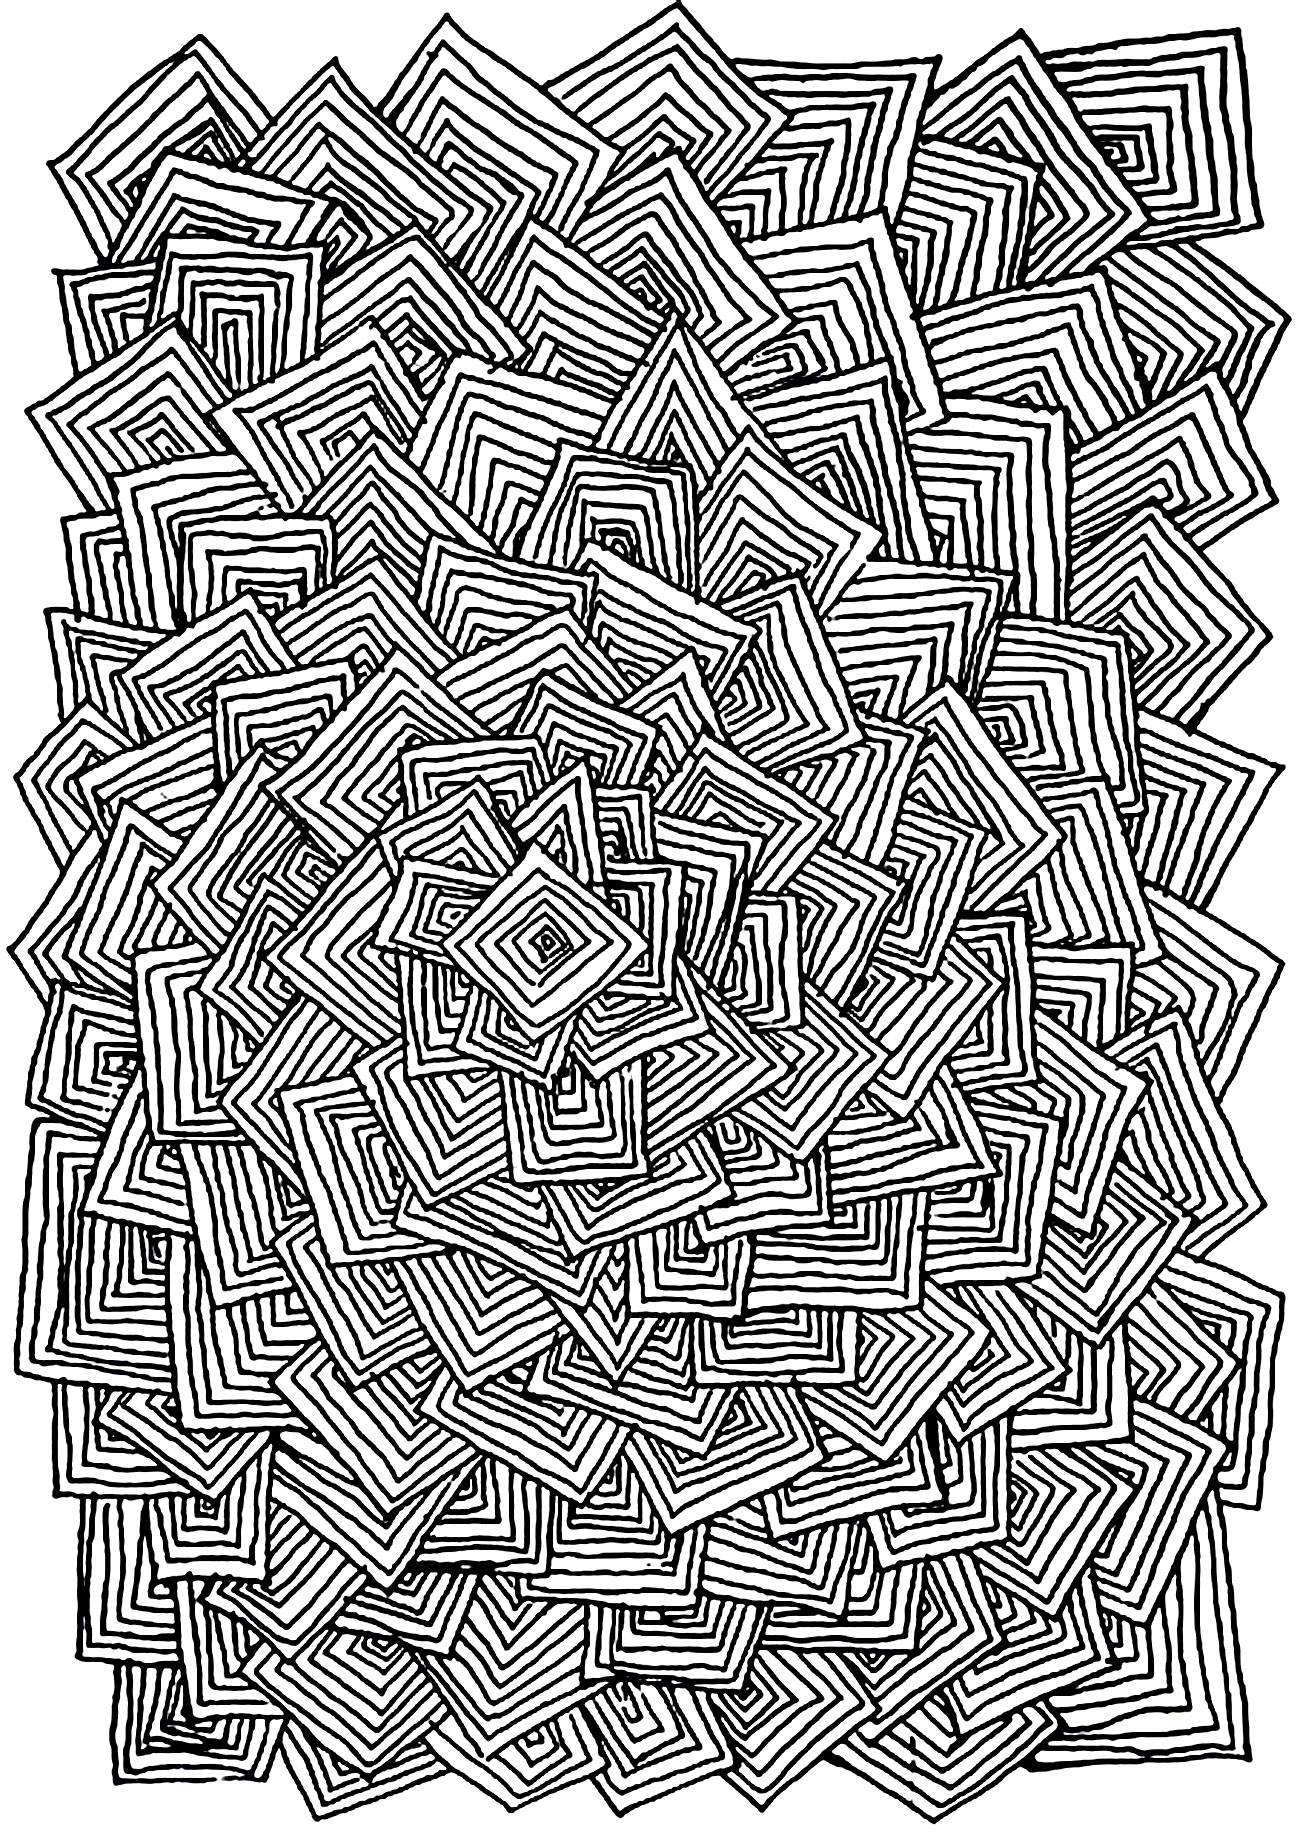 Relax squares Anti stress Adult Coloring Pages Page 2